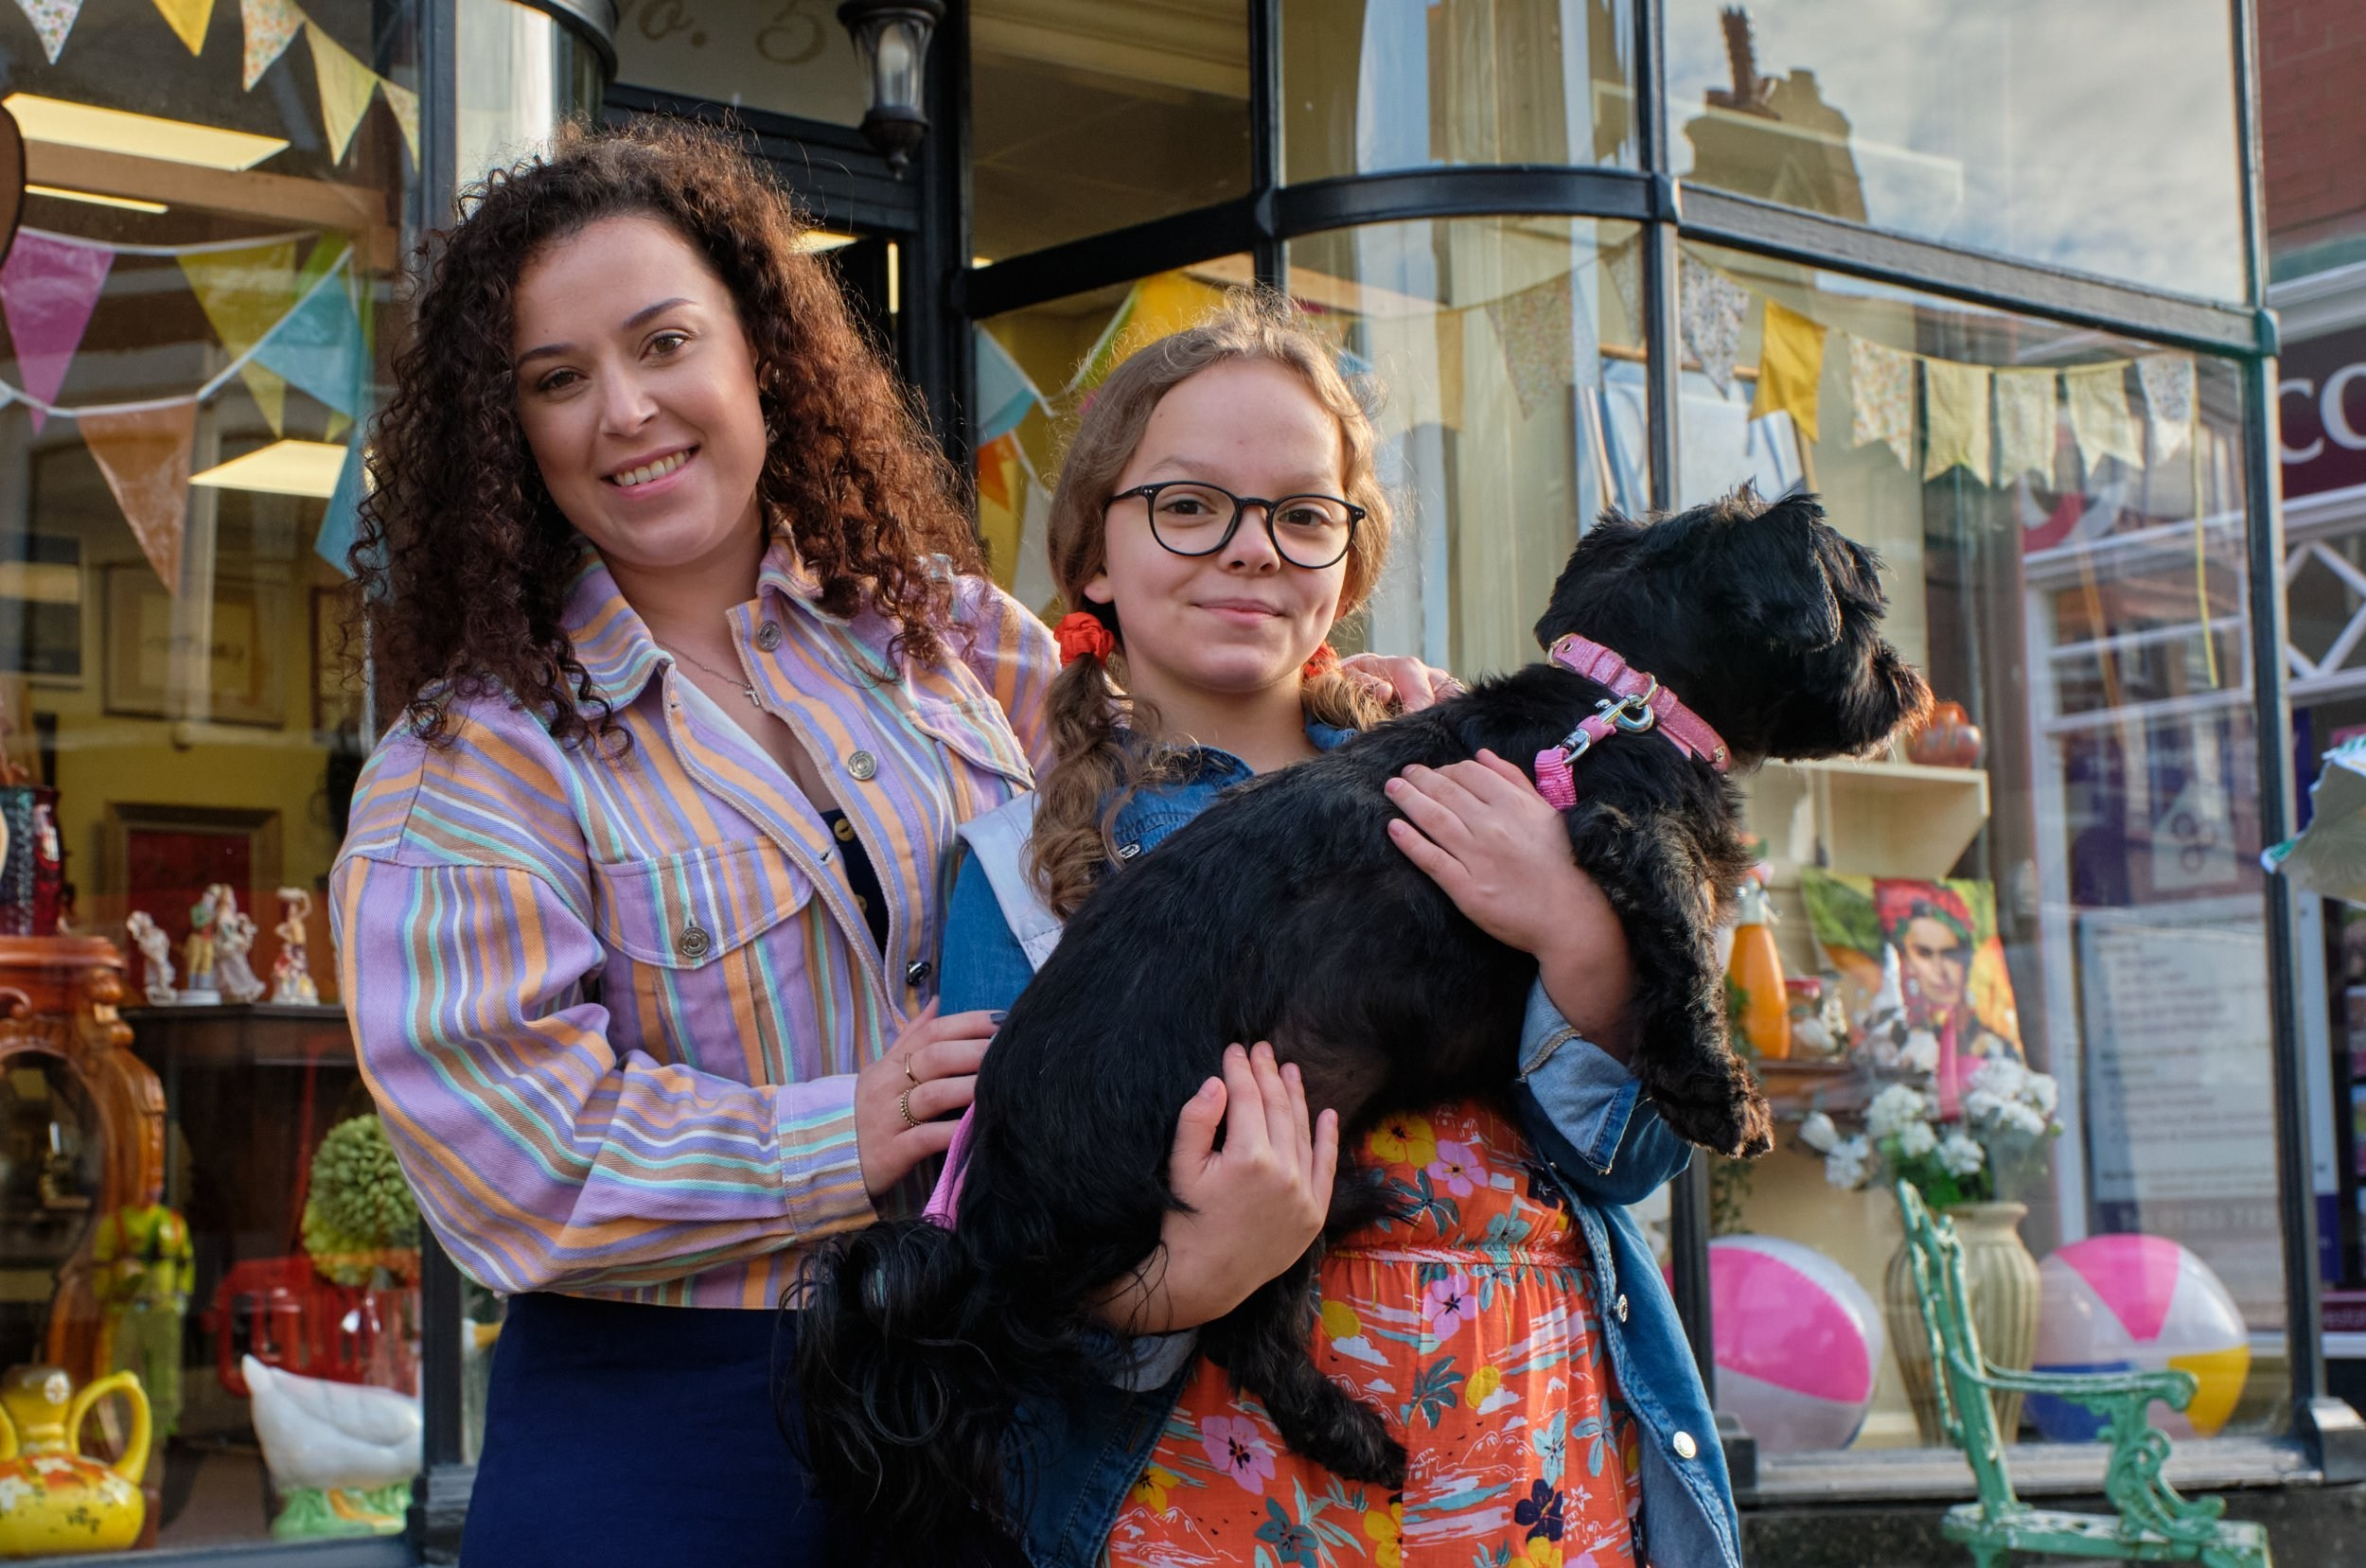 My Mum Tracy Beaker: New details revealed as Dani Harmer returns to iconic role